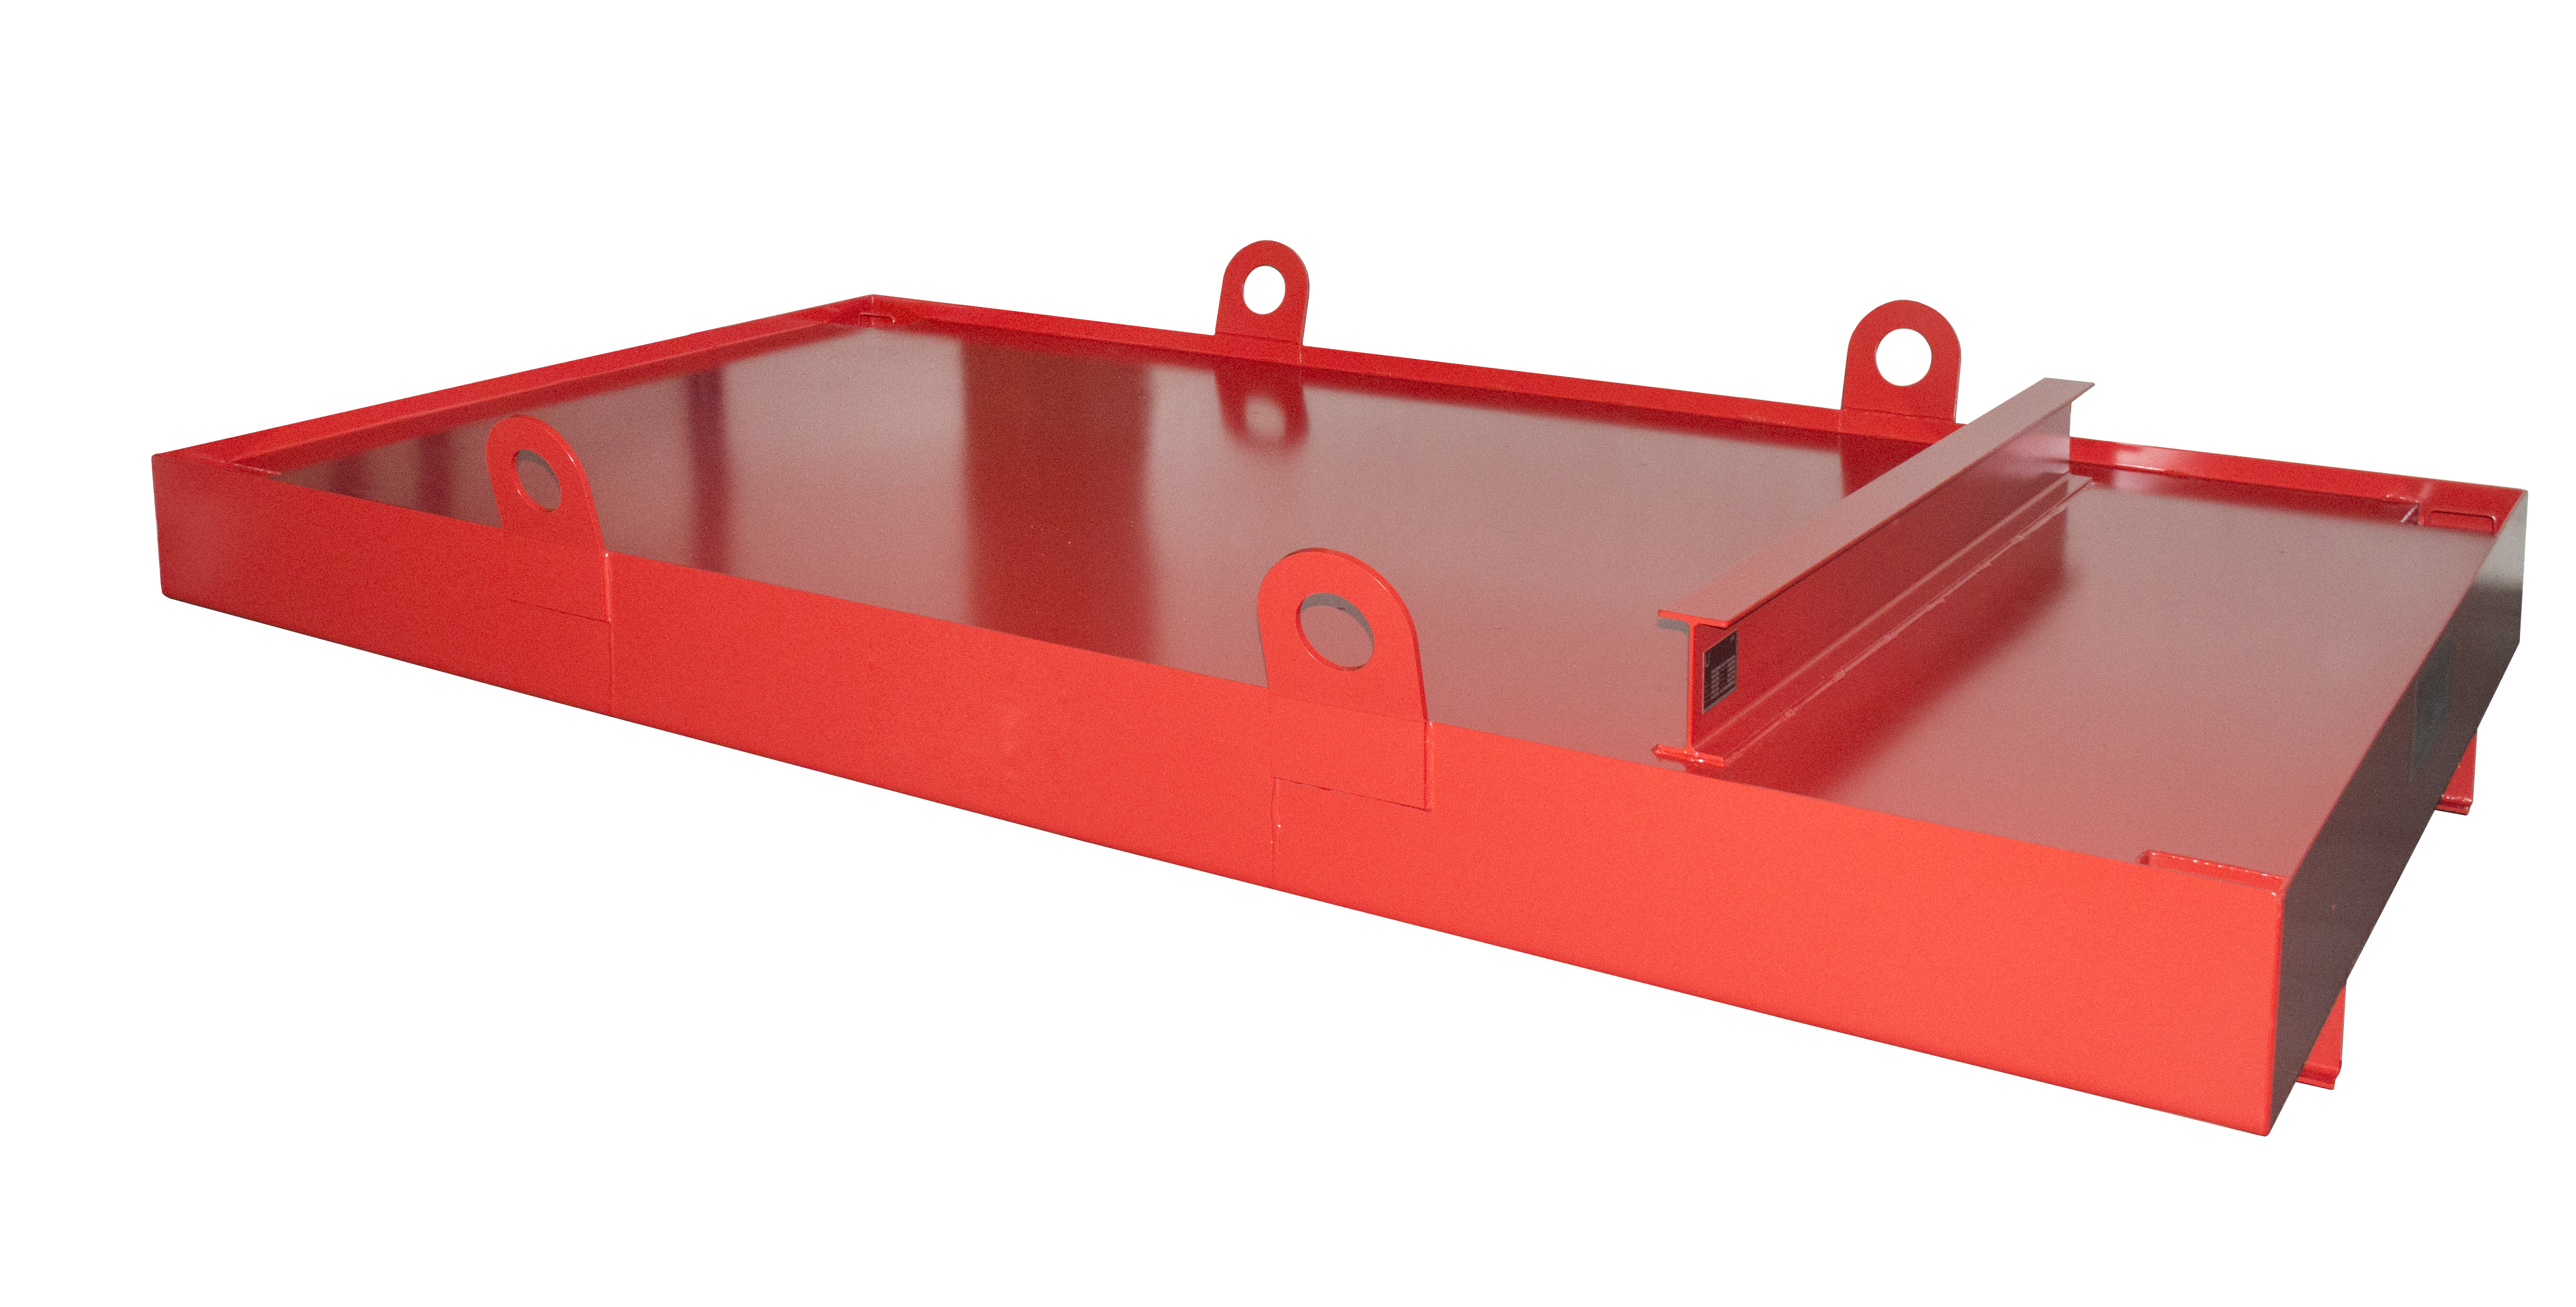 Bauer Südlohn® CW container tub, crane eyelets for recording with crane